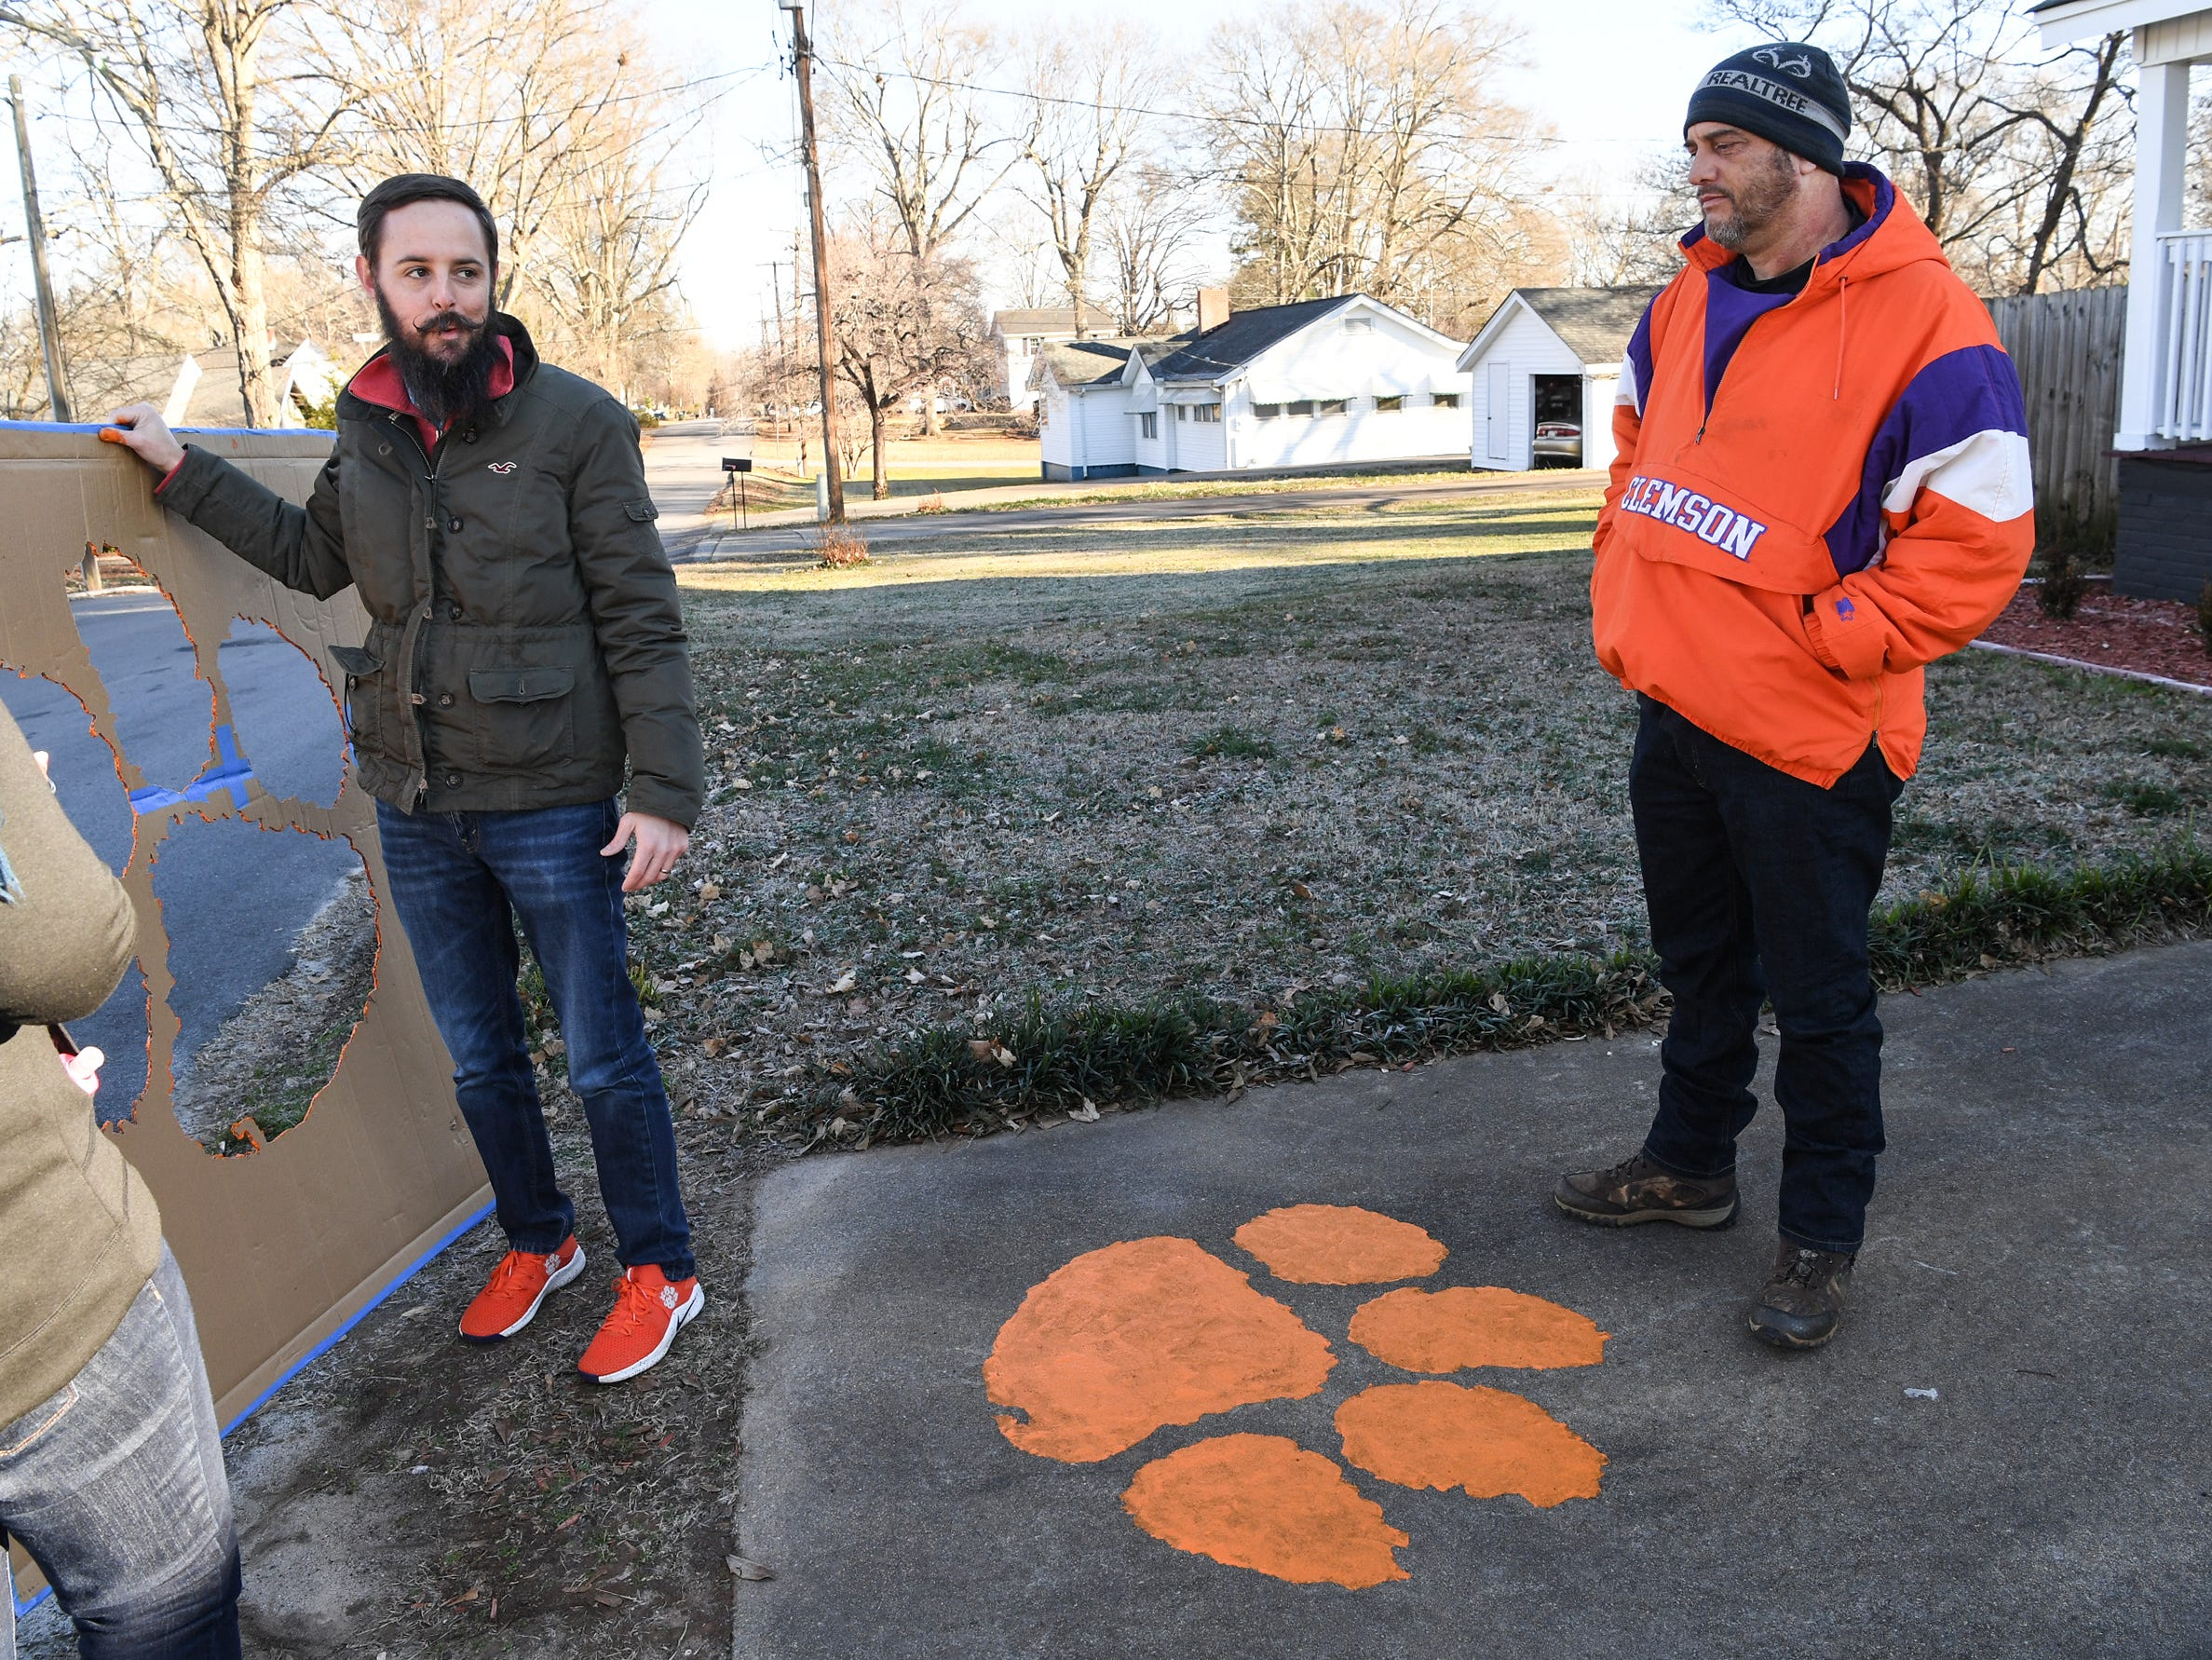 Blake Sanders, West Pelzer mayor, talks with Eric Smith, right, in West Pelzer after painting a tiger paw on his walkway Friday. Sanders, planning on painting 40 of them around town on walkways and driveways of those who have asked him through social media.